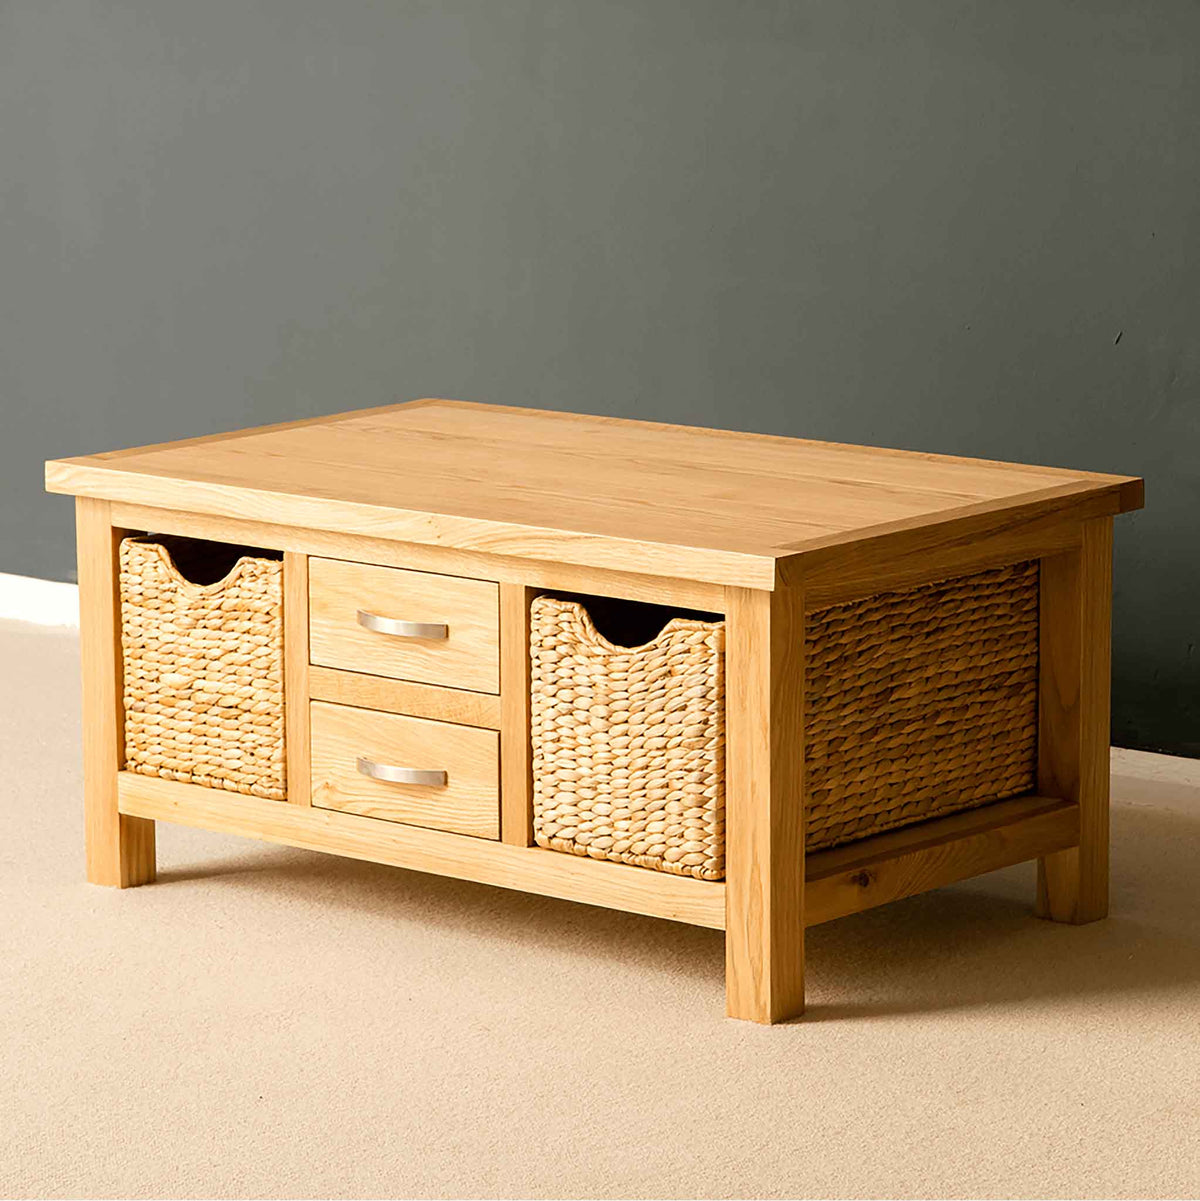 London Oak Coffee Table with Baskets - Lifestyle side view